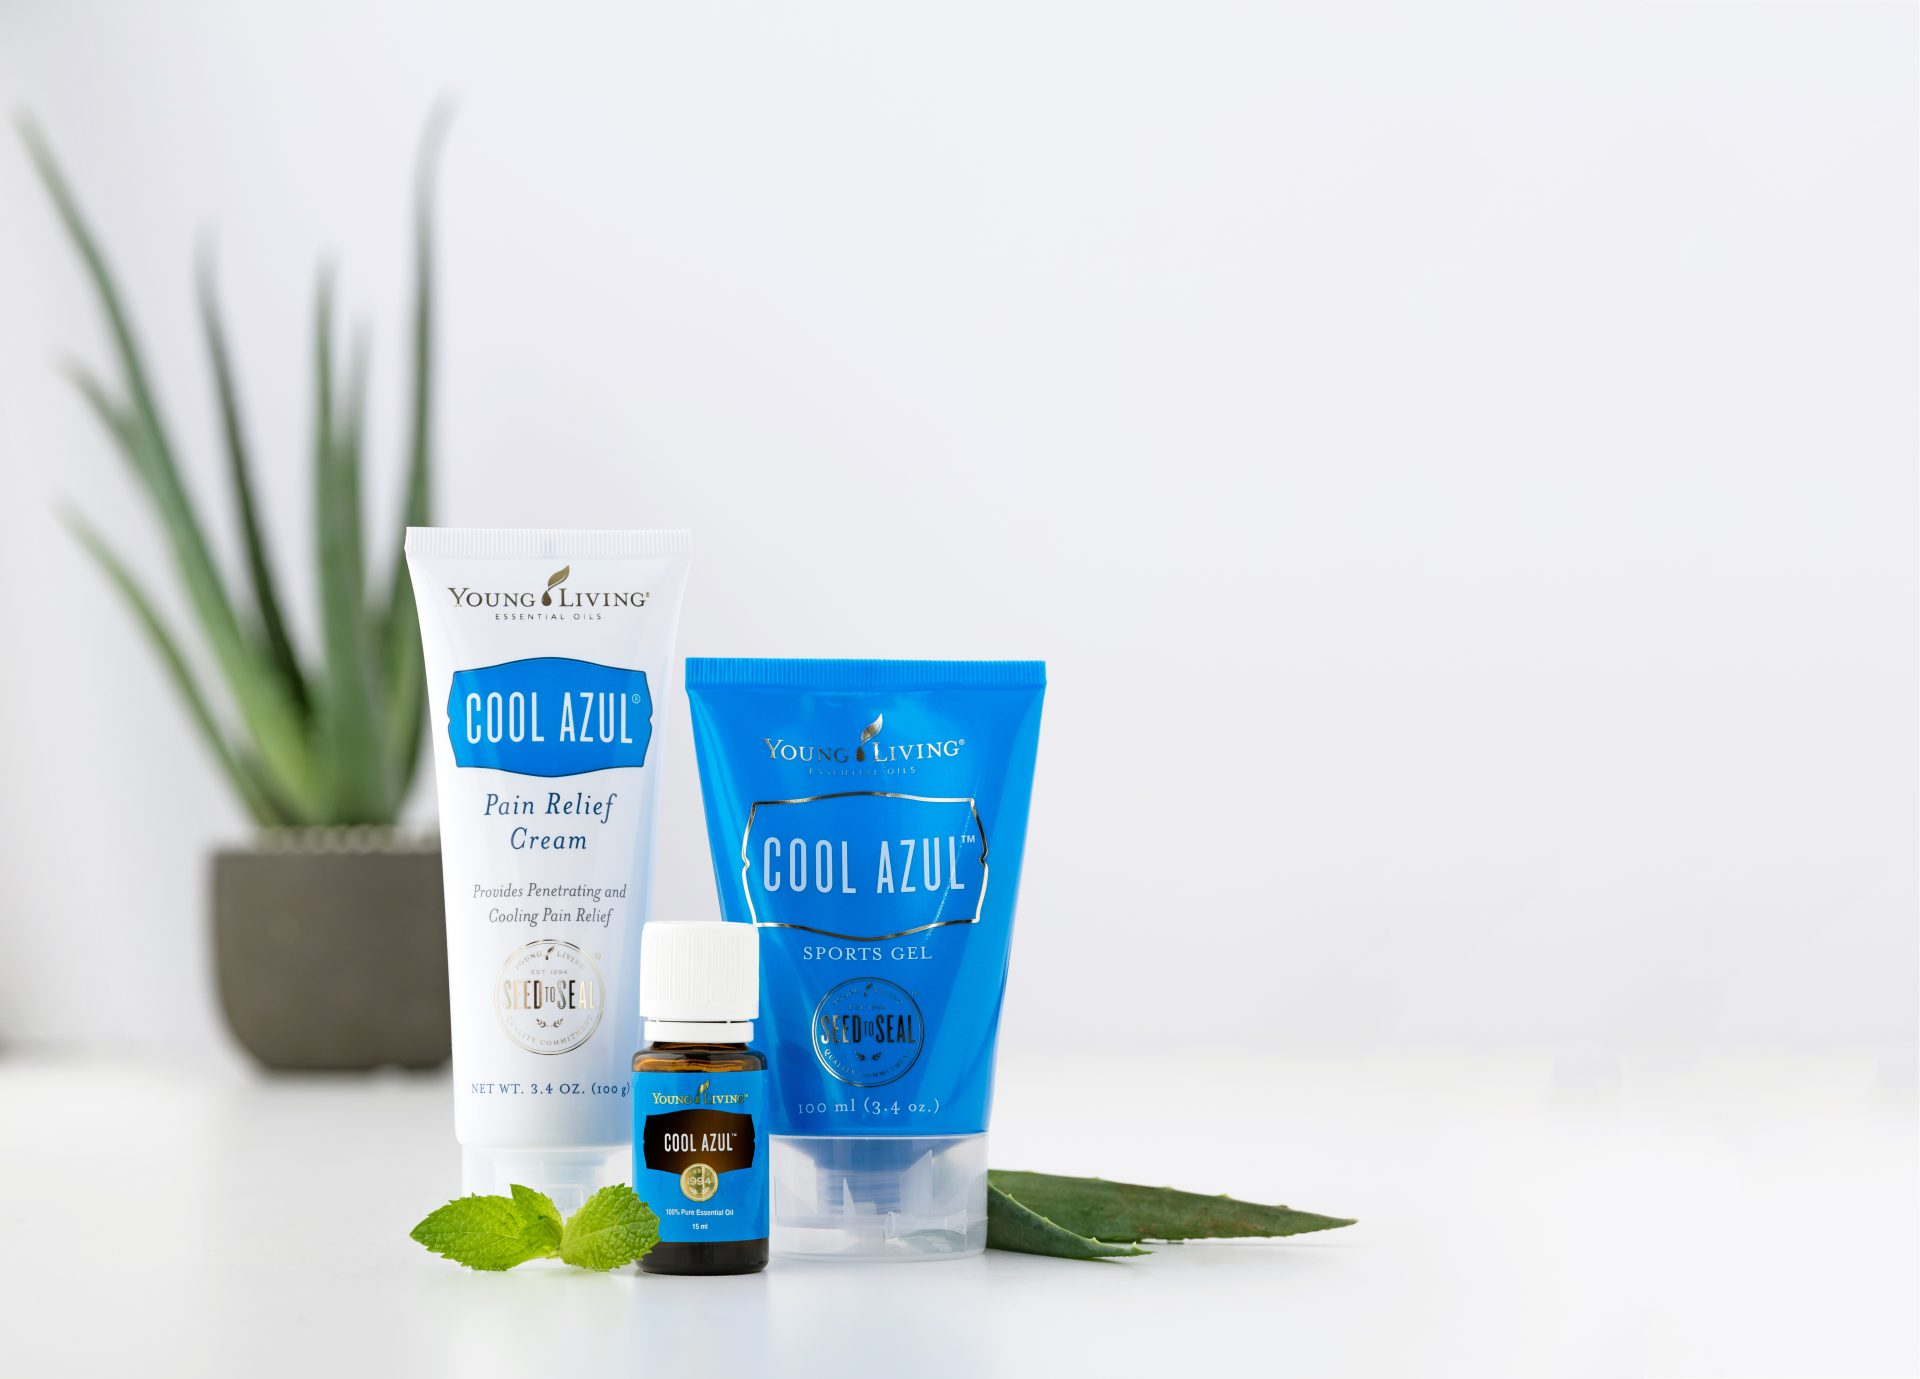 Cool Azul product line